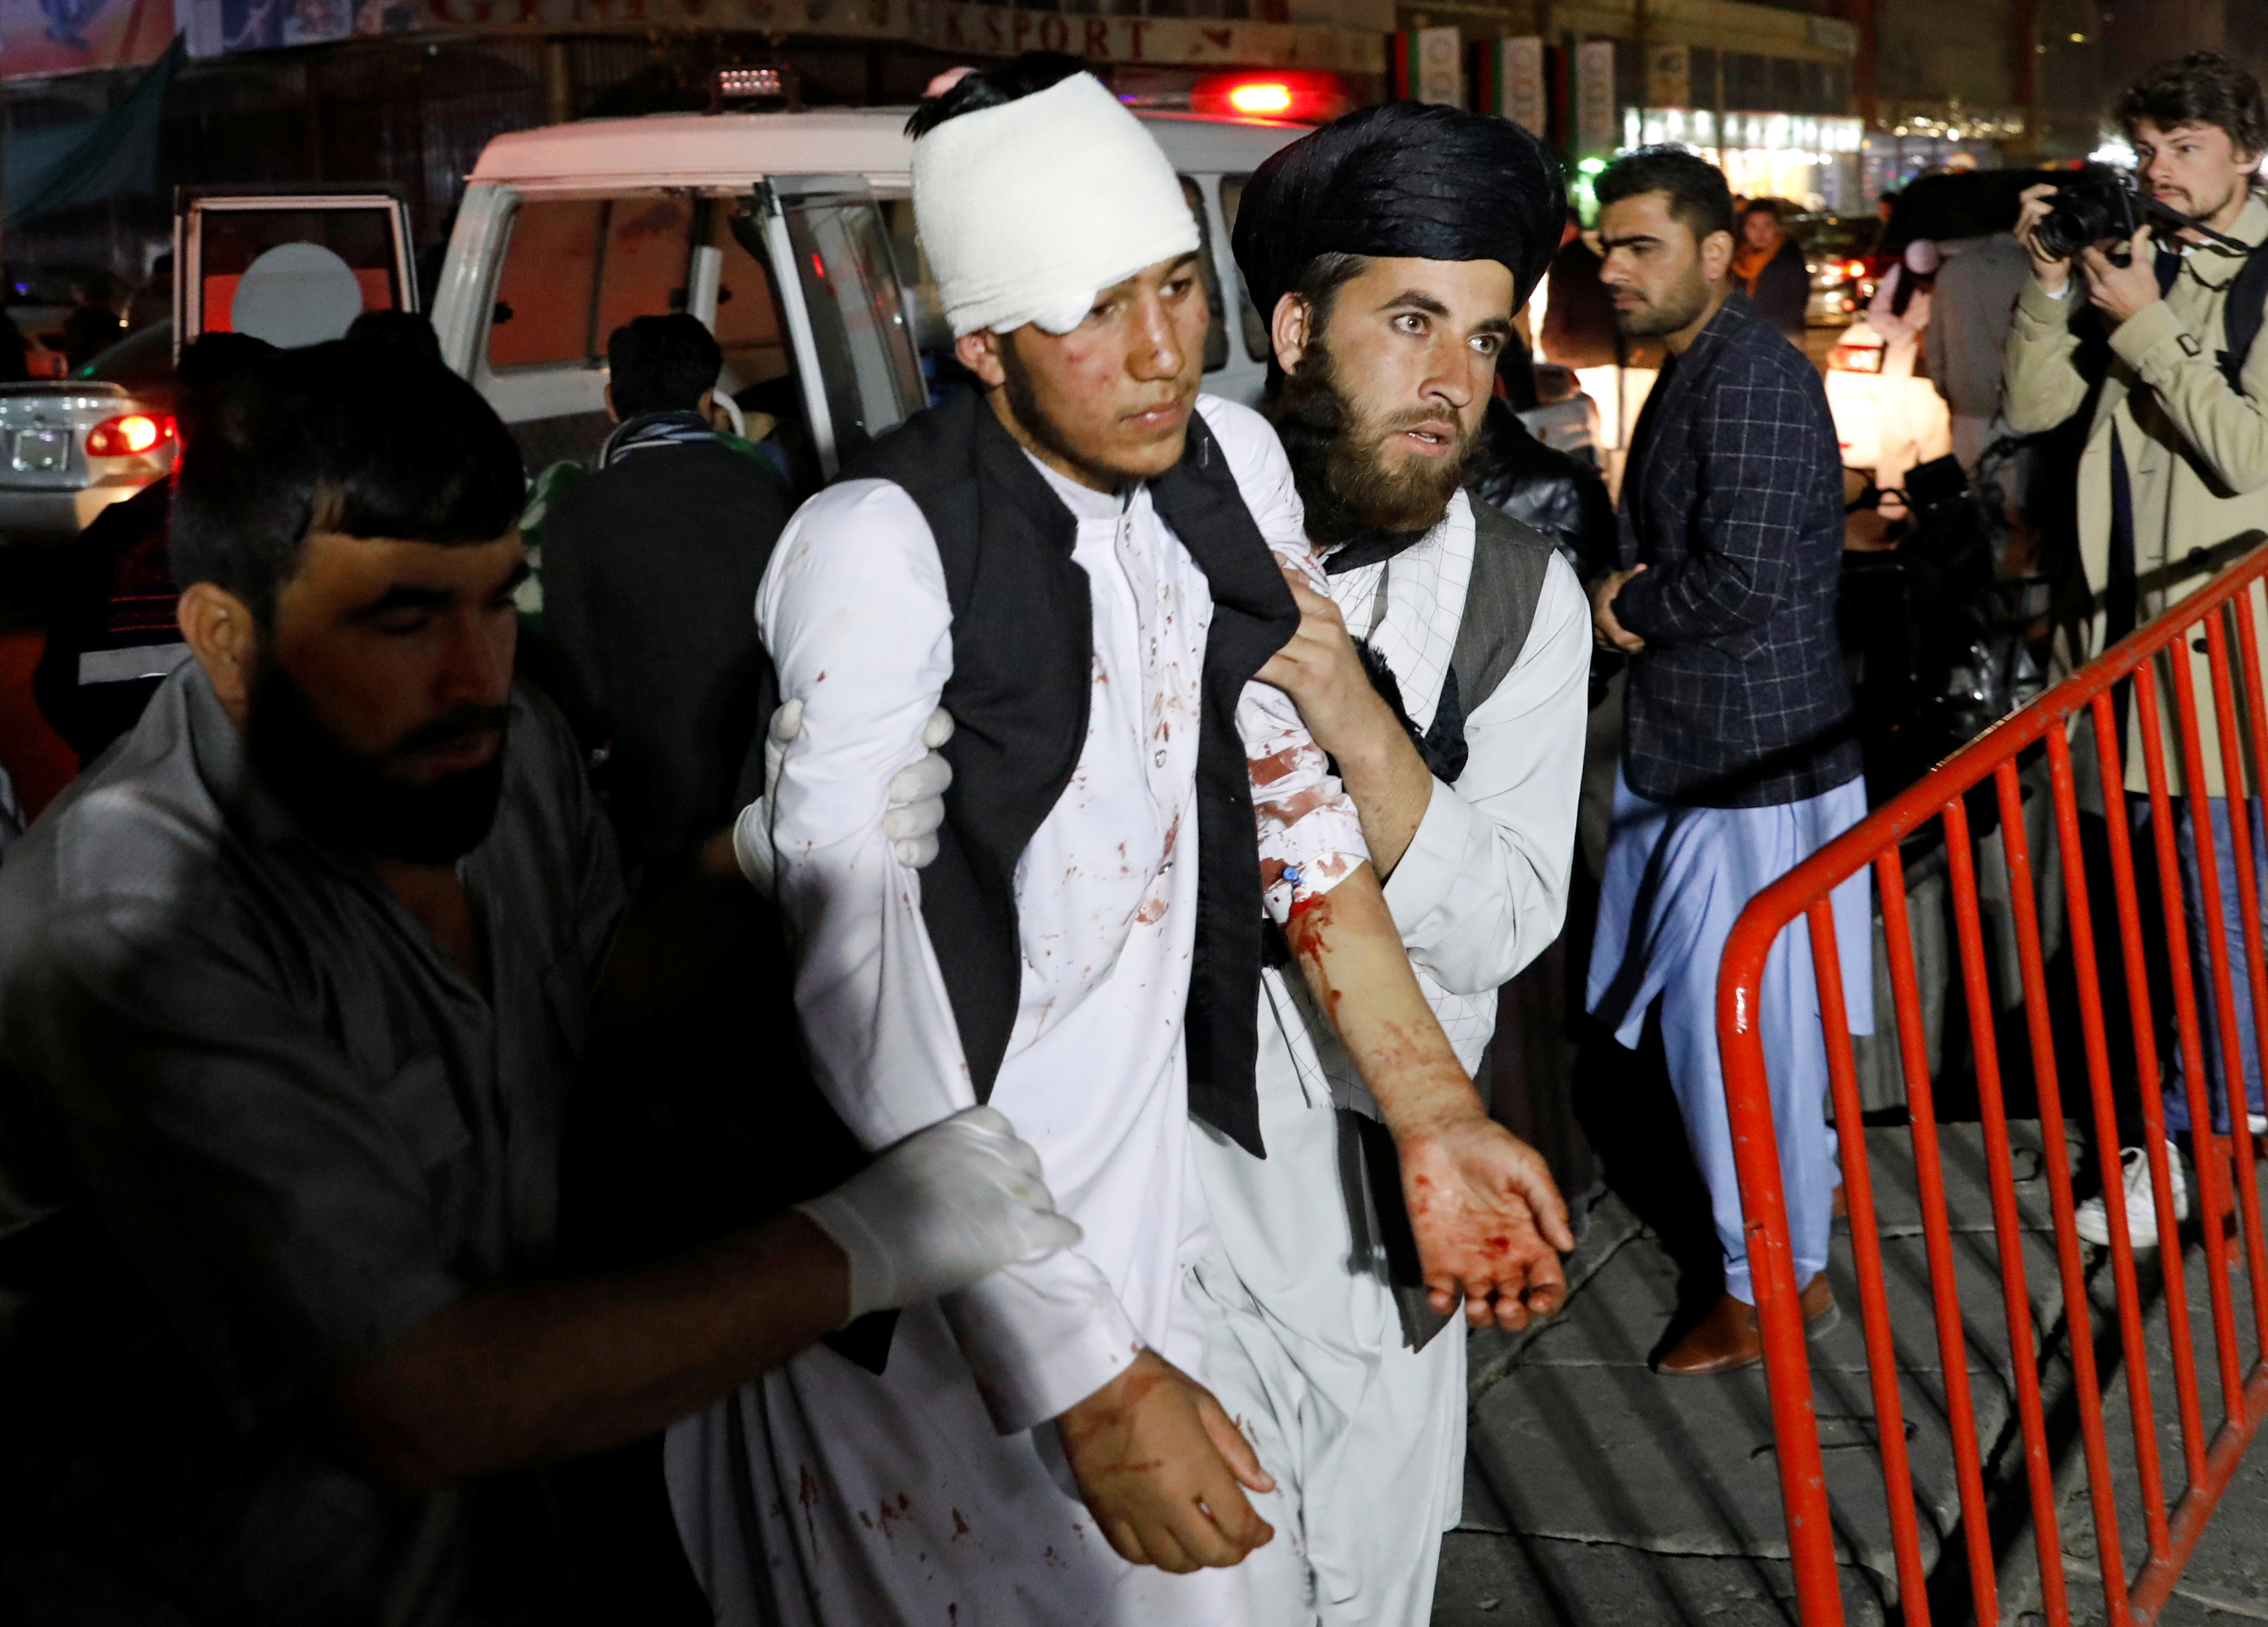 Afghan men carry an injured person to a hospital after a suicide attack in Kabul, Afghanistan, Nov. 20, 2018.